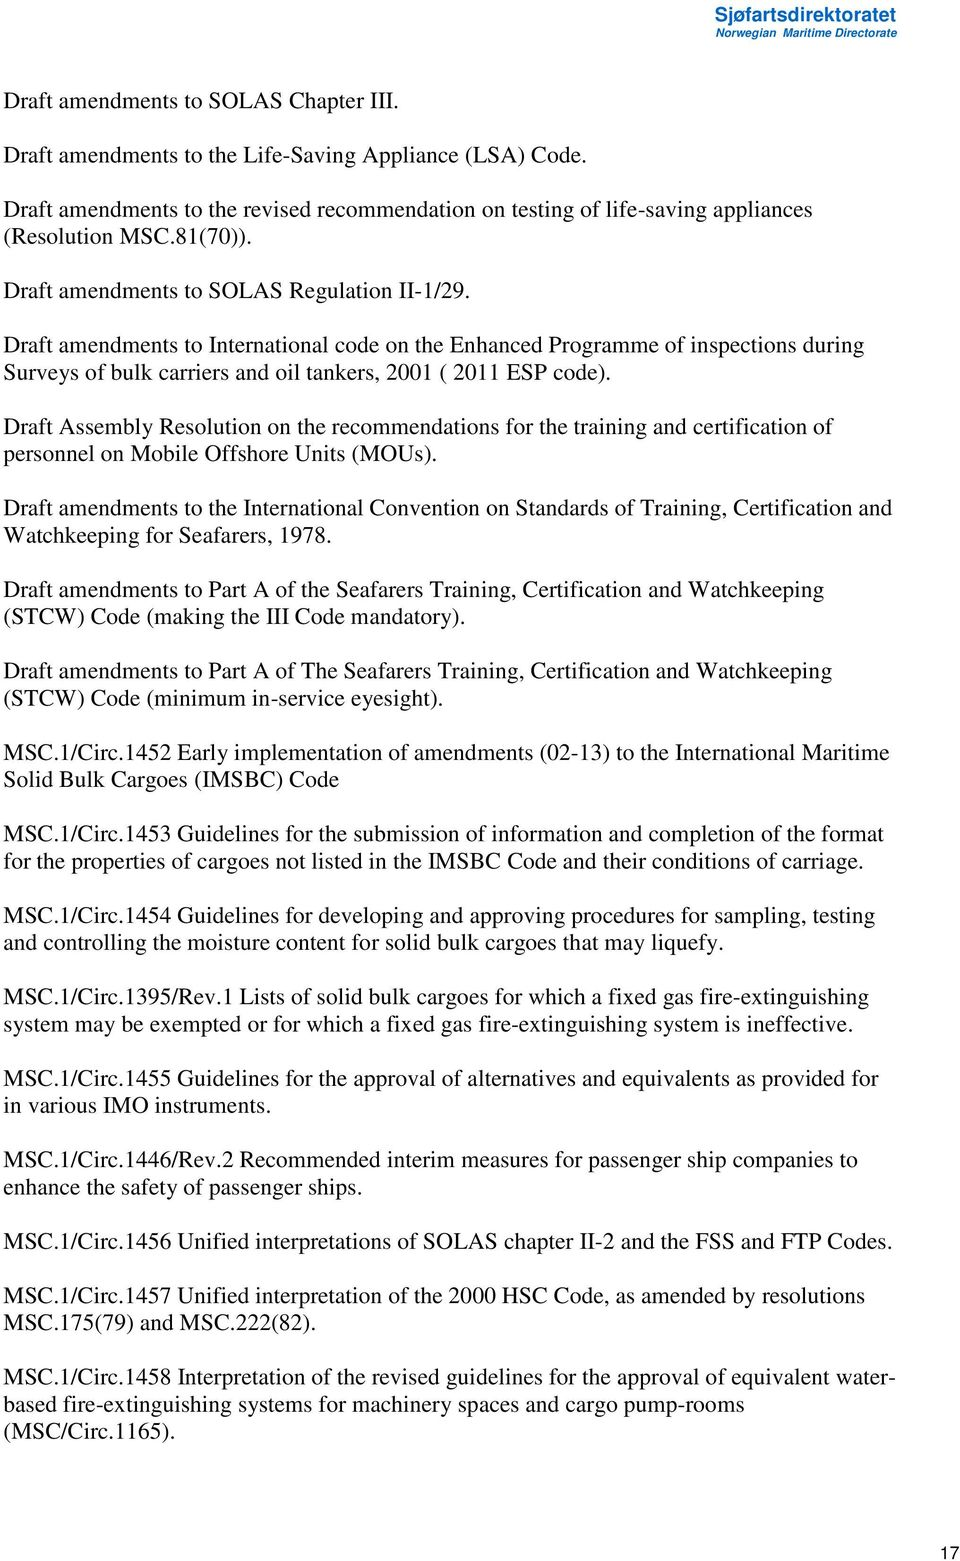 Draft amendments to International code on the Enhanced Programme of inspections during Surveys of bulk carriers and oil tankers, 2001 ( 2011 ESP code).